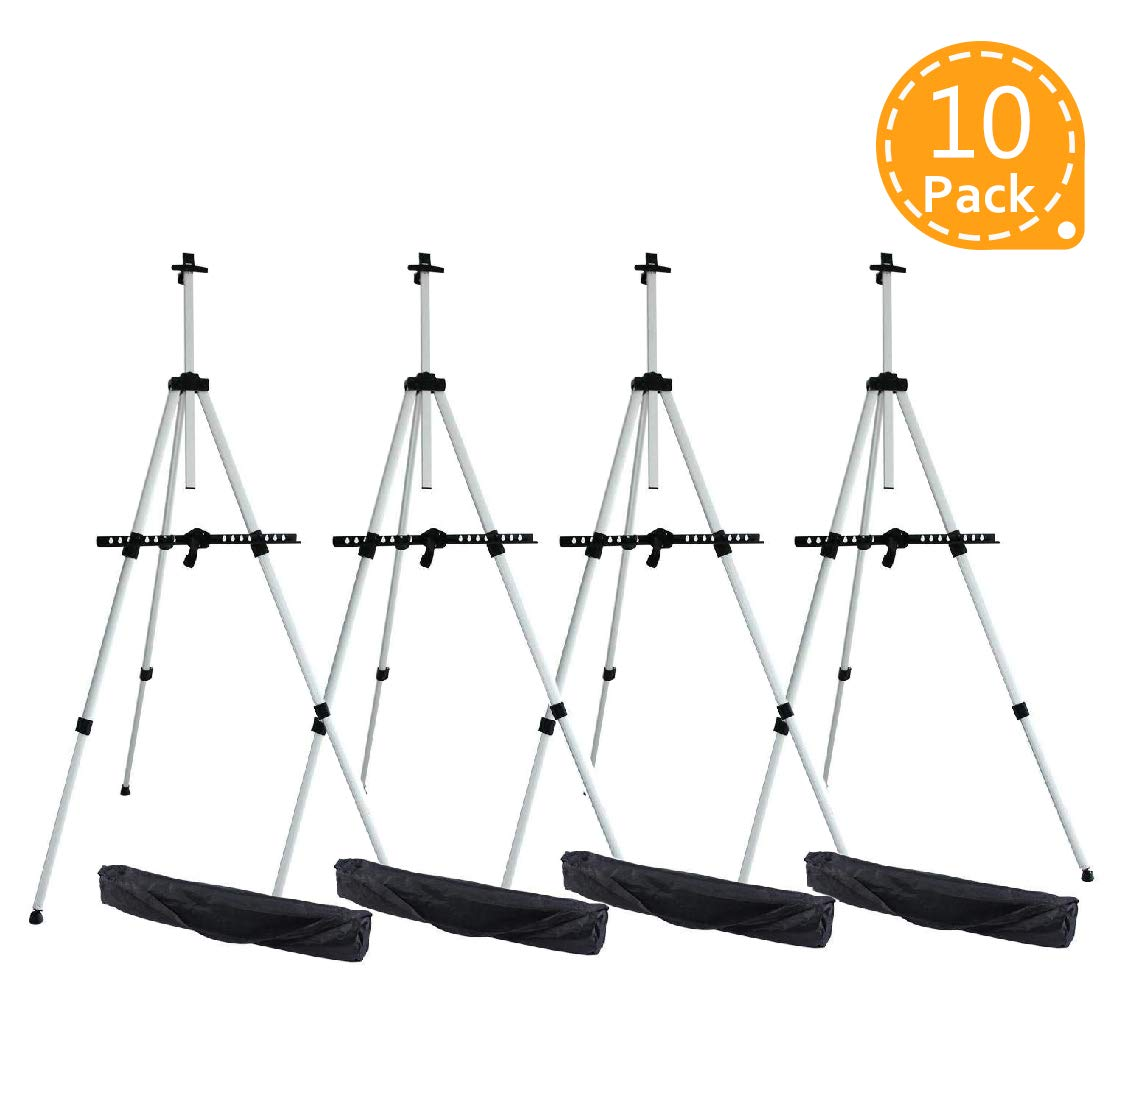 Artist Easel, Ohuhu 10-Pack Aluminum Field Easel Stand with Bag for Table-Top/Floor, Art Easels with Adjustable Height from 21-Inch to 66-Inch